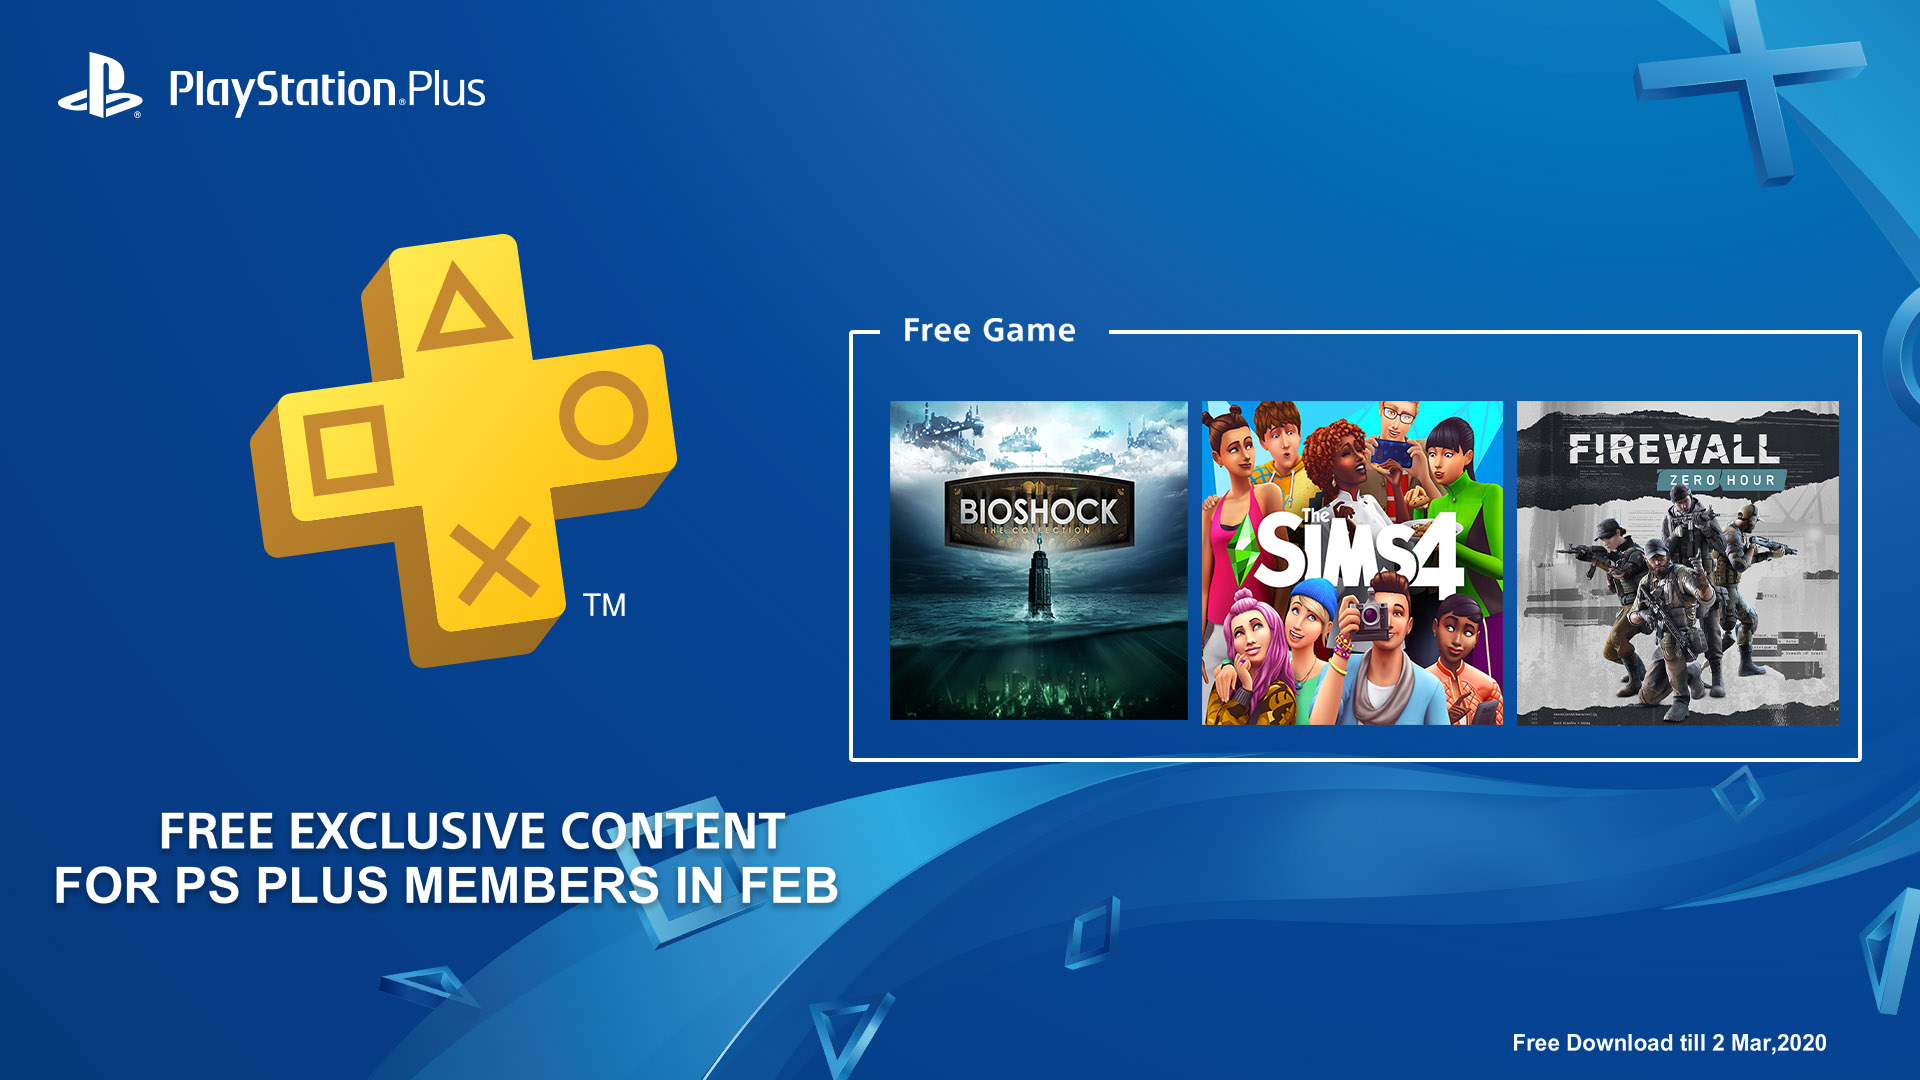 PS Plus February 2020 free game